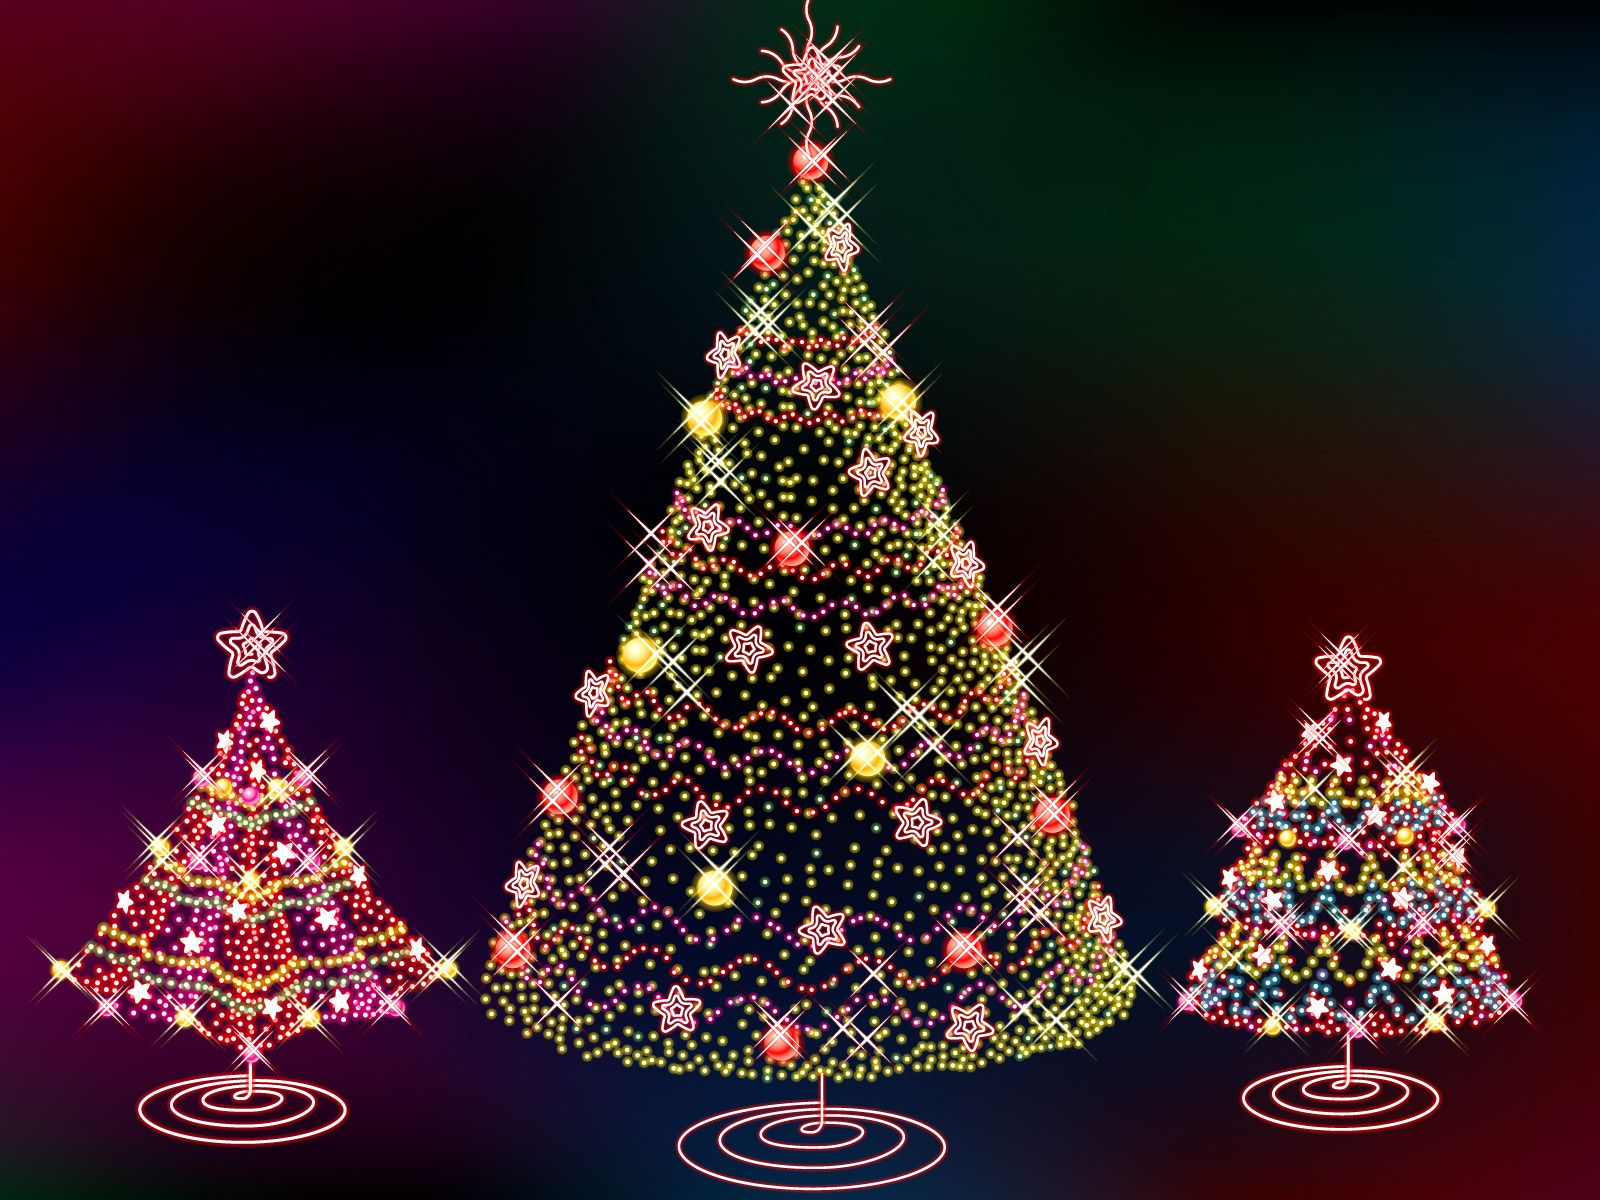 Pictures Of Christmas Trees Artificial Christmas Trees With Lights Christmas Tree Artificial Miniature